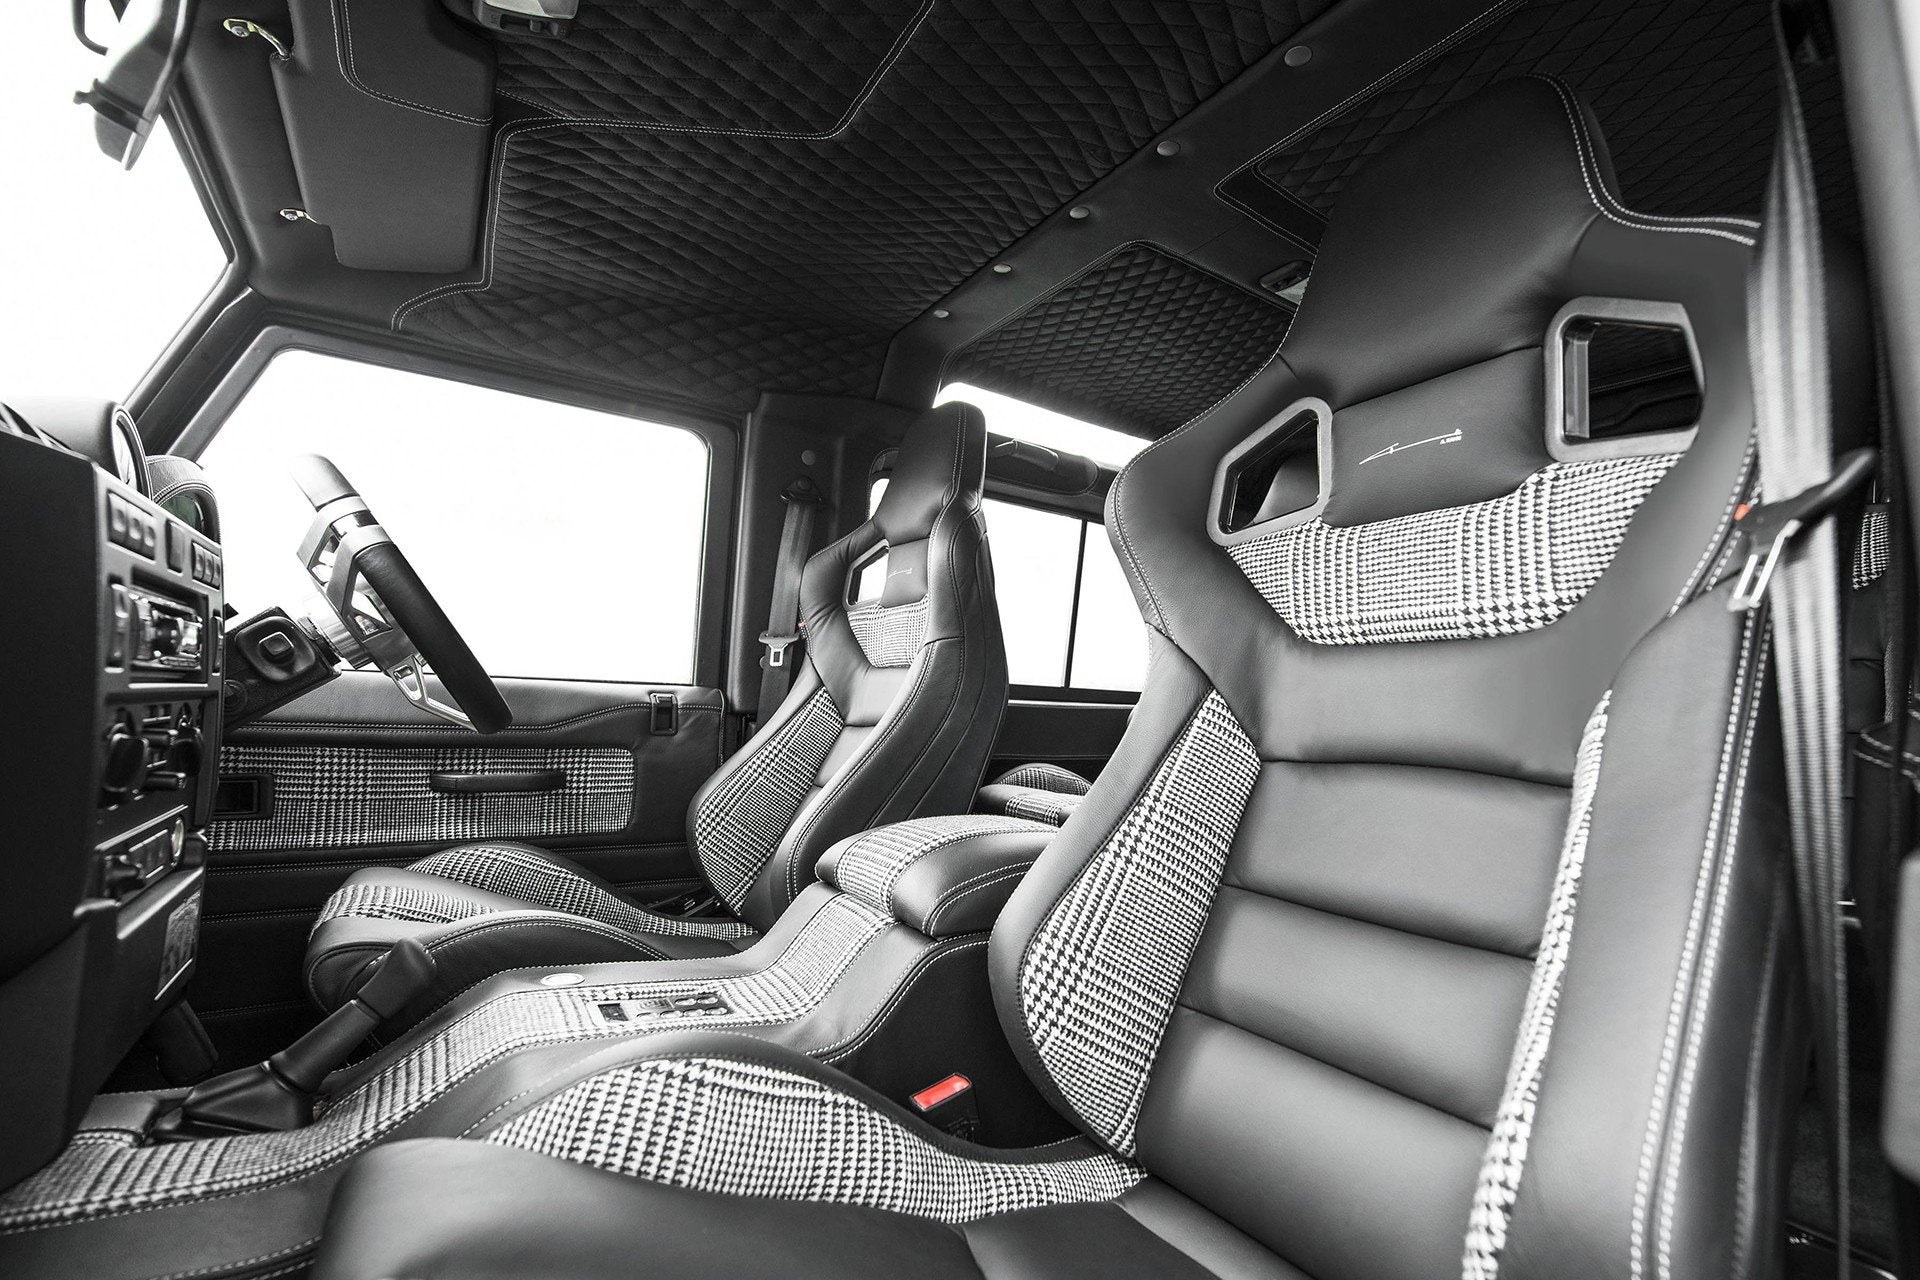 Land Rover Defender 90 (1991-2016) Leather Interior by Chelsea Truck Company - Image 1491